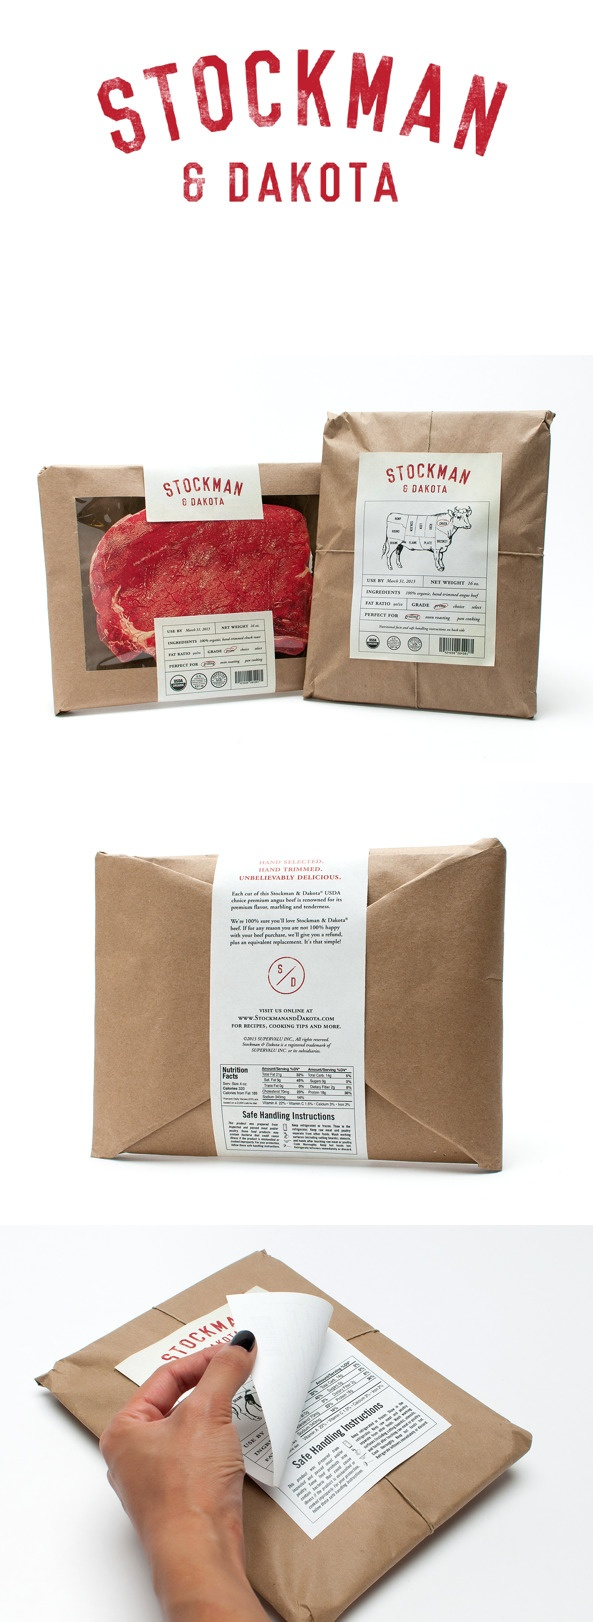 Stockman  Dakota Beef gives you a window into the food in a unique and unexpected way. #RetailPackaging